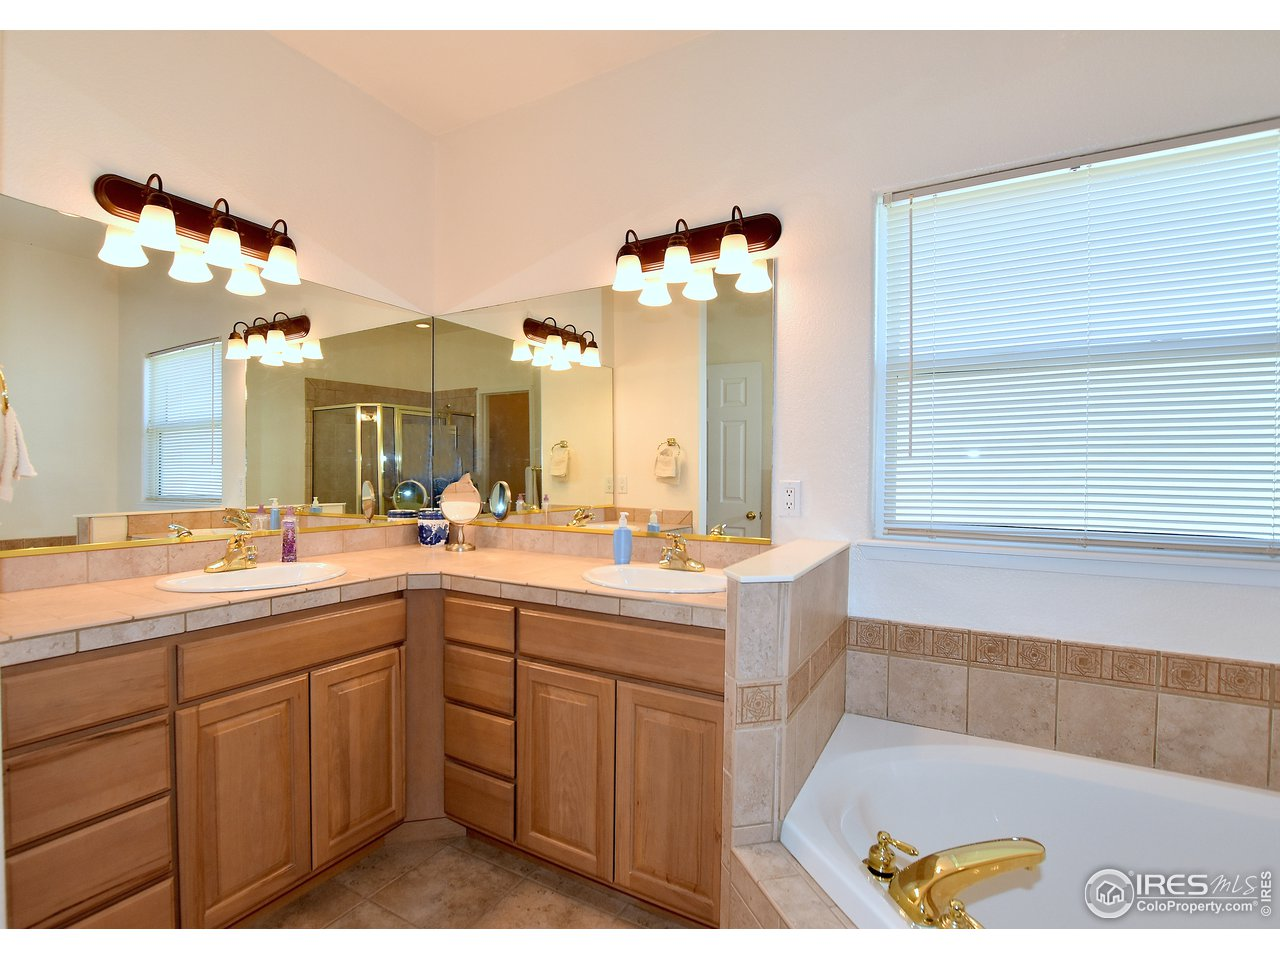 5 piece master bathroom tile countertops and flooring